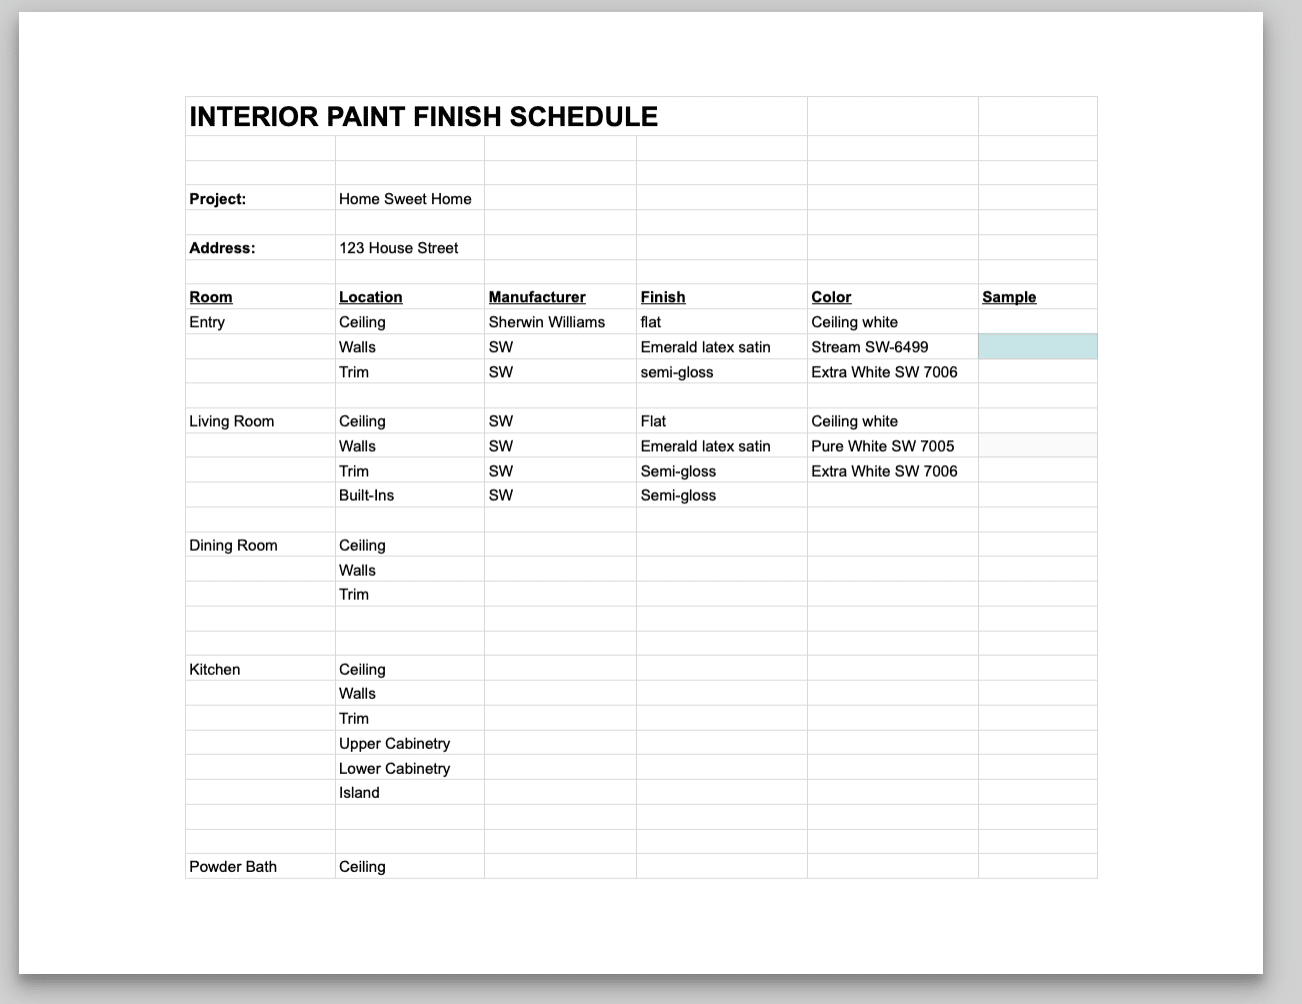 Interior Paint Finish Schedule Examples